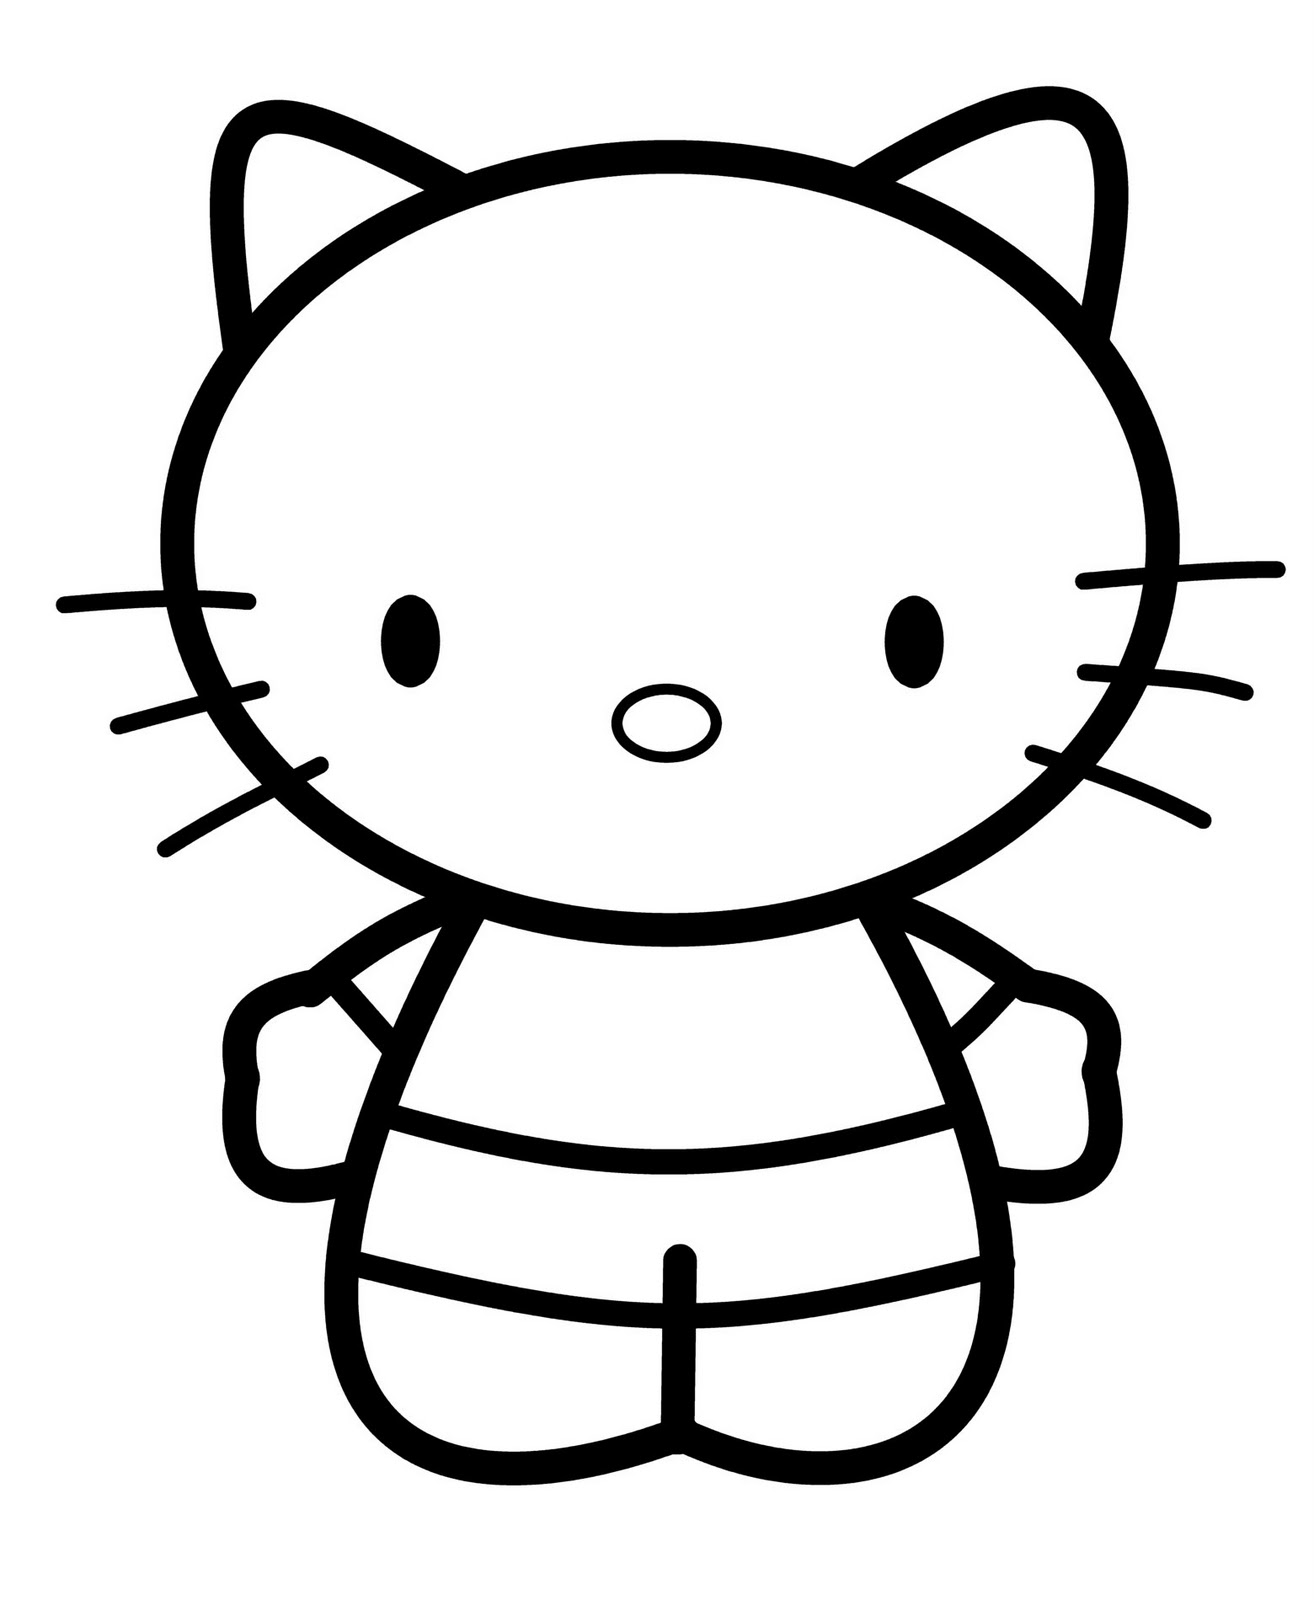 how to draw hello kitty step by step how to draw hello kitty drawingforallnet by step step draw to kitty hello how